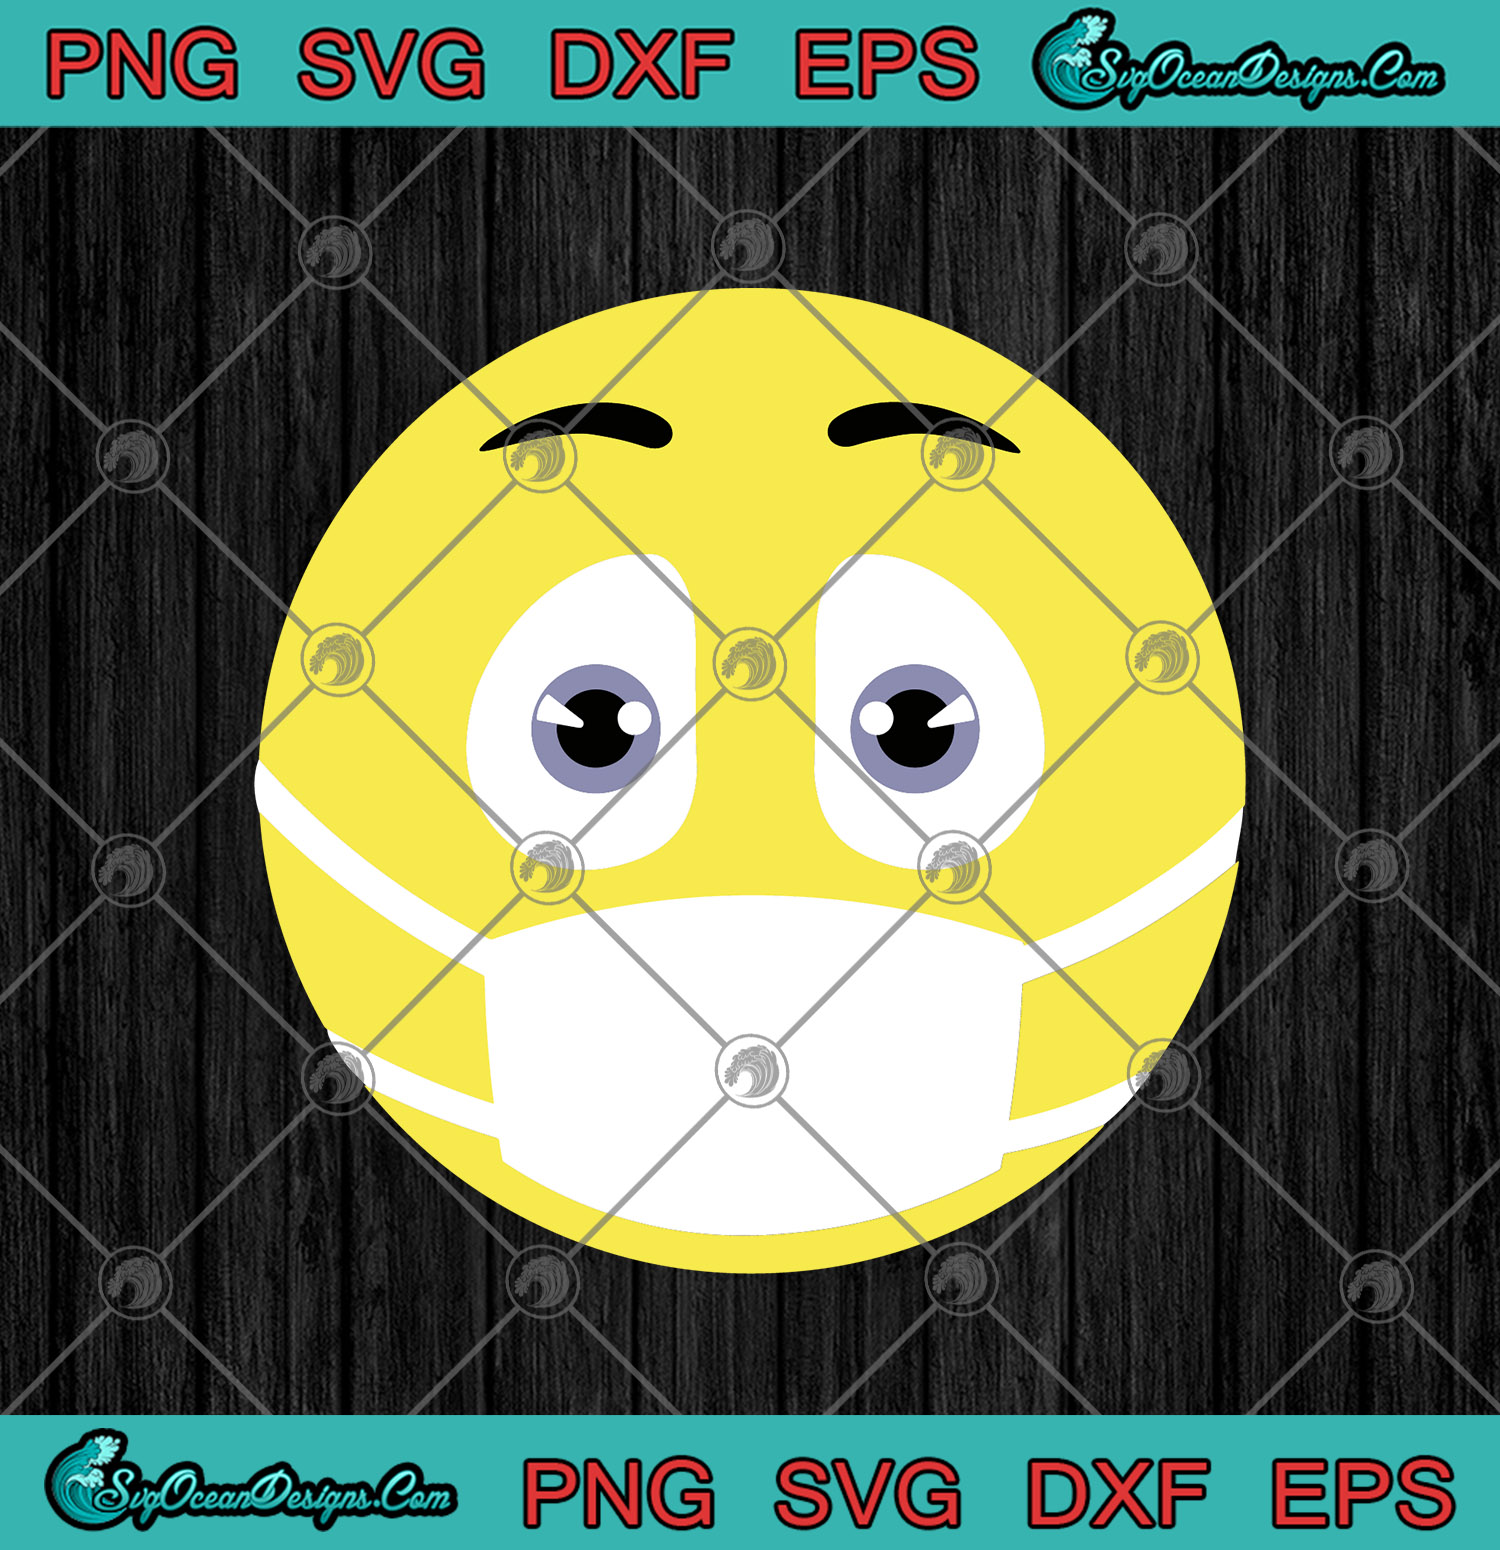 Emoji With Face Mask Corona Coronavirus Svg Png Dxf Eps Fuck Covid 19 Coronavirus Svg Png Cricut File Silhouette Art Designs Digital Download